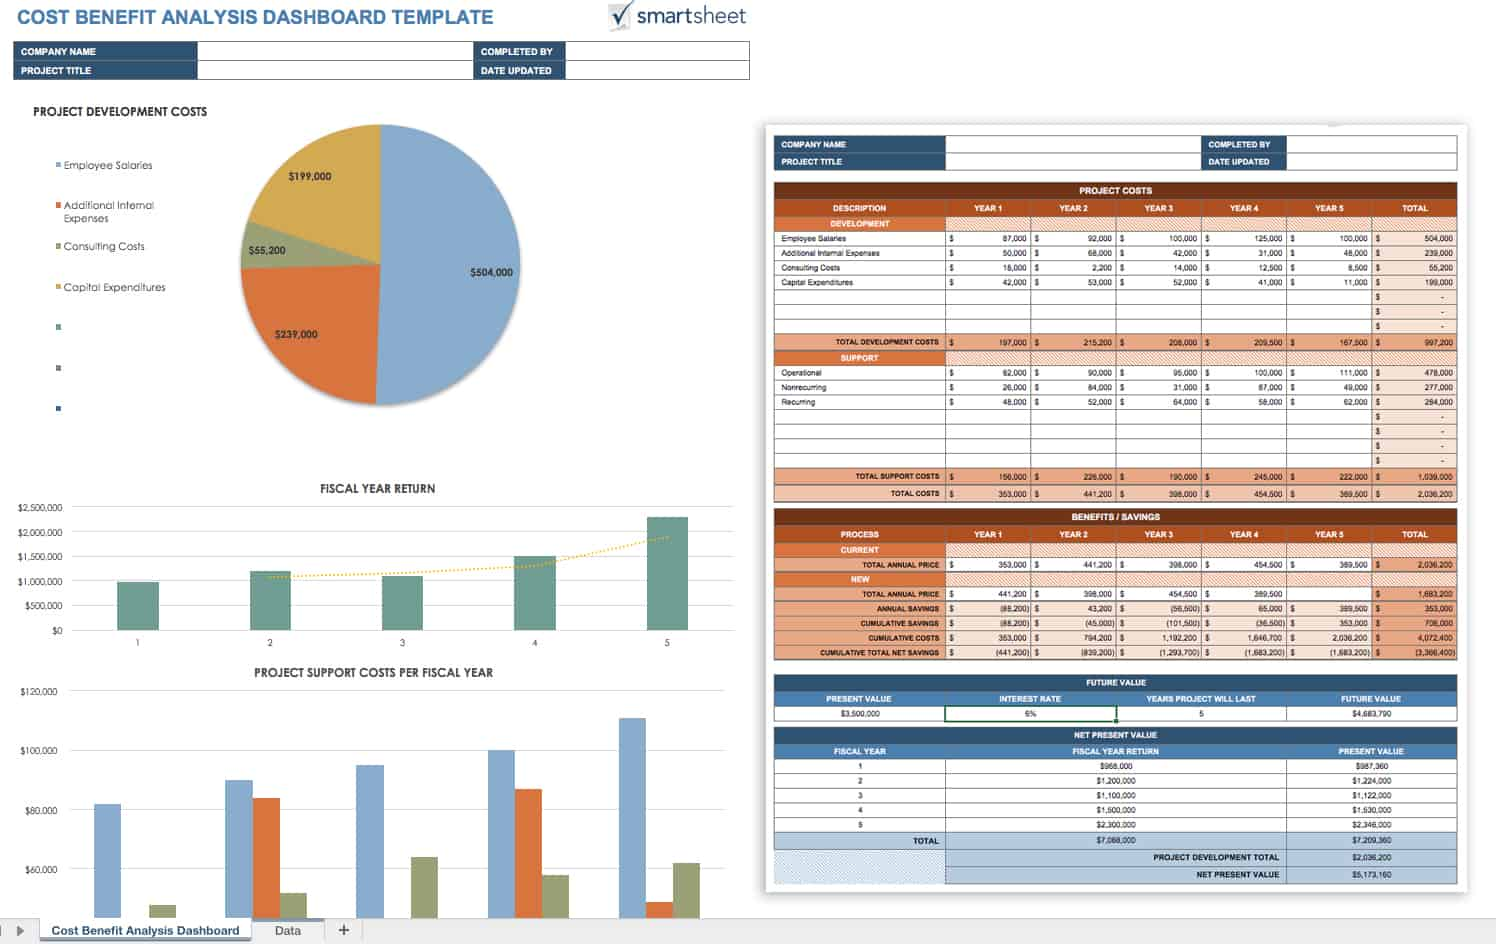 outsourcing risk assessment template - free cost benefit analysis templates smartsheet